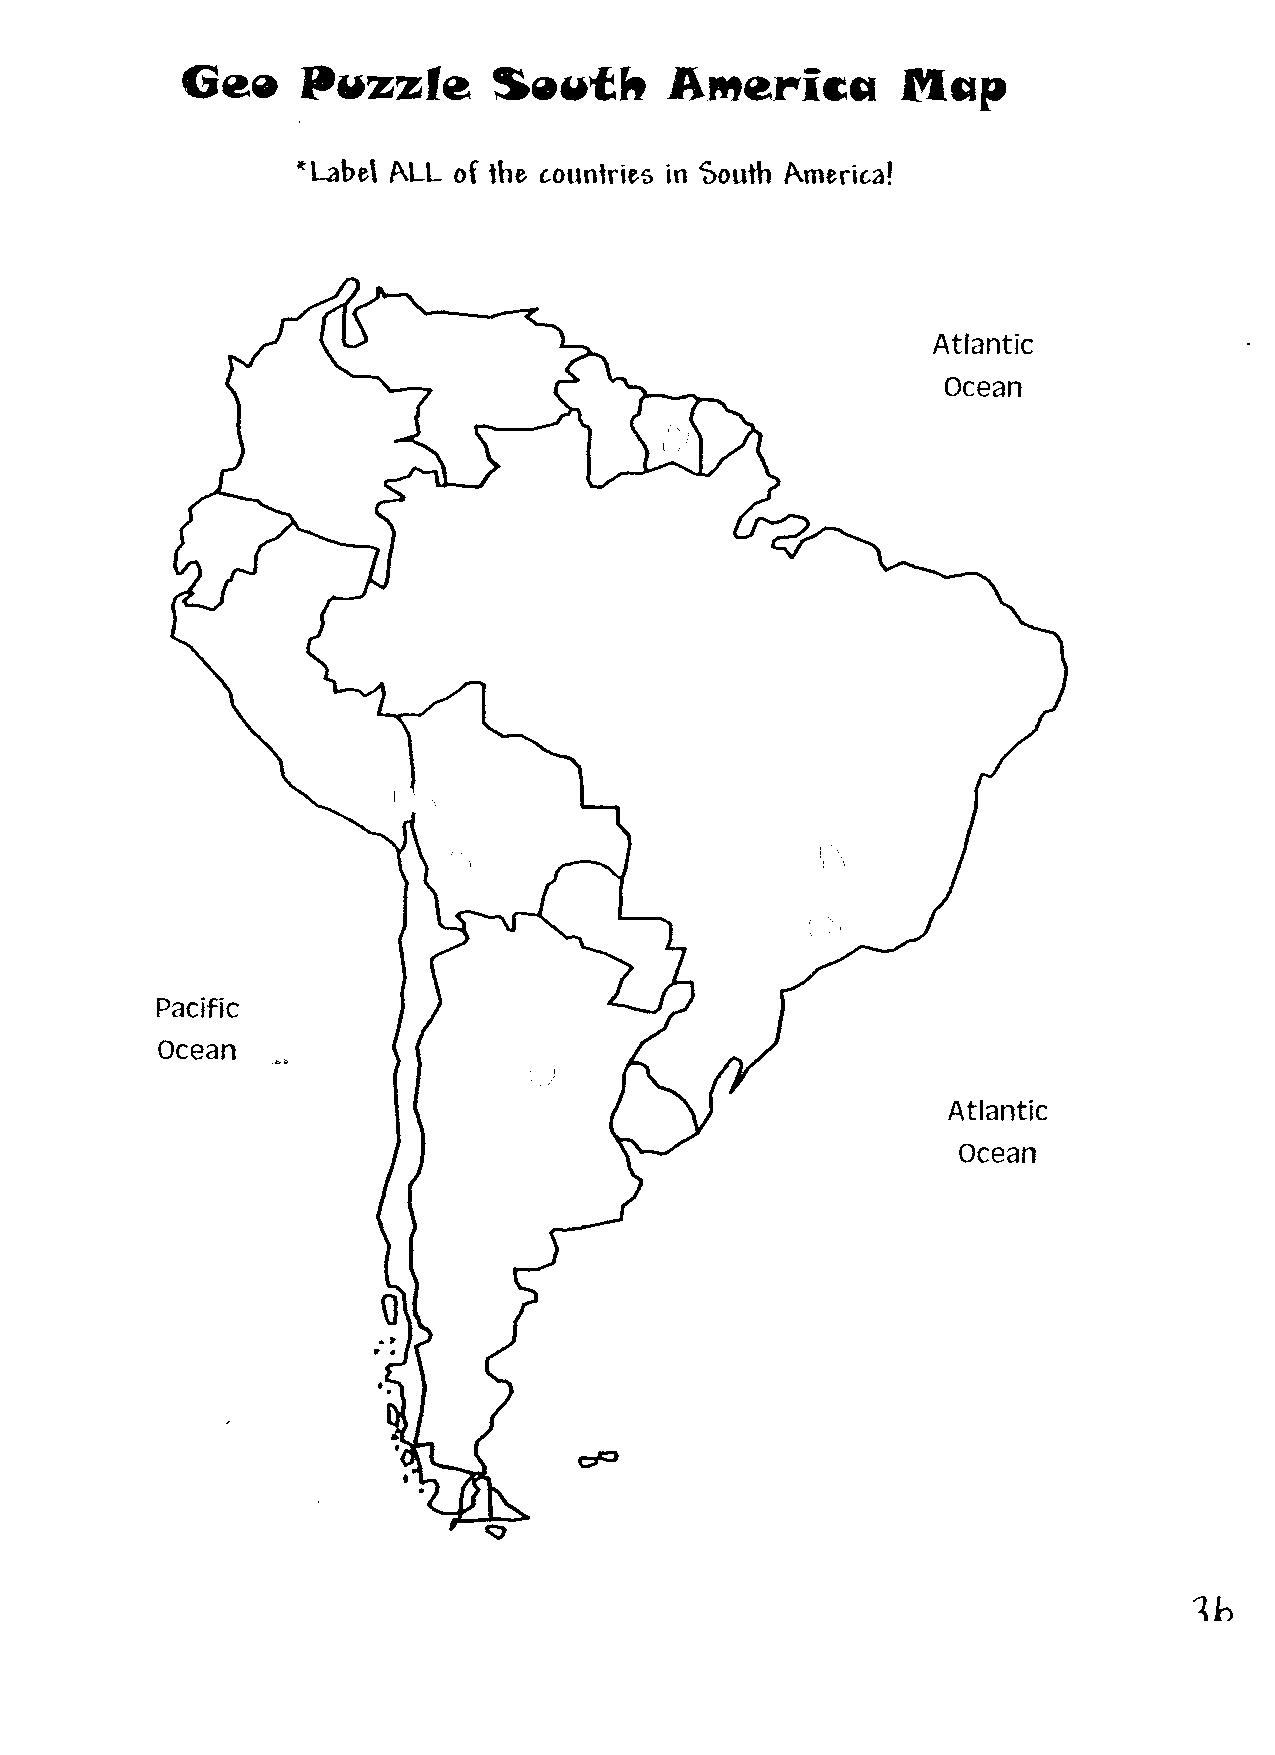 south america map activity 5d Geopuzzle South America Map2 Uc Links Activity Guides